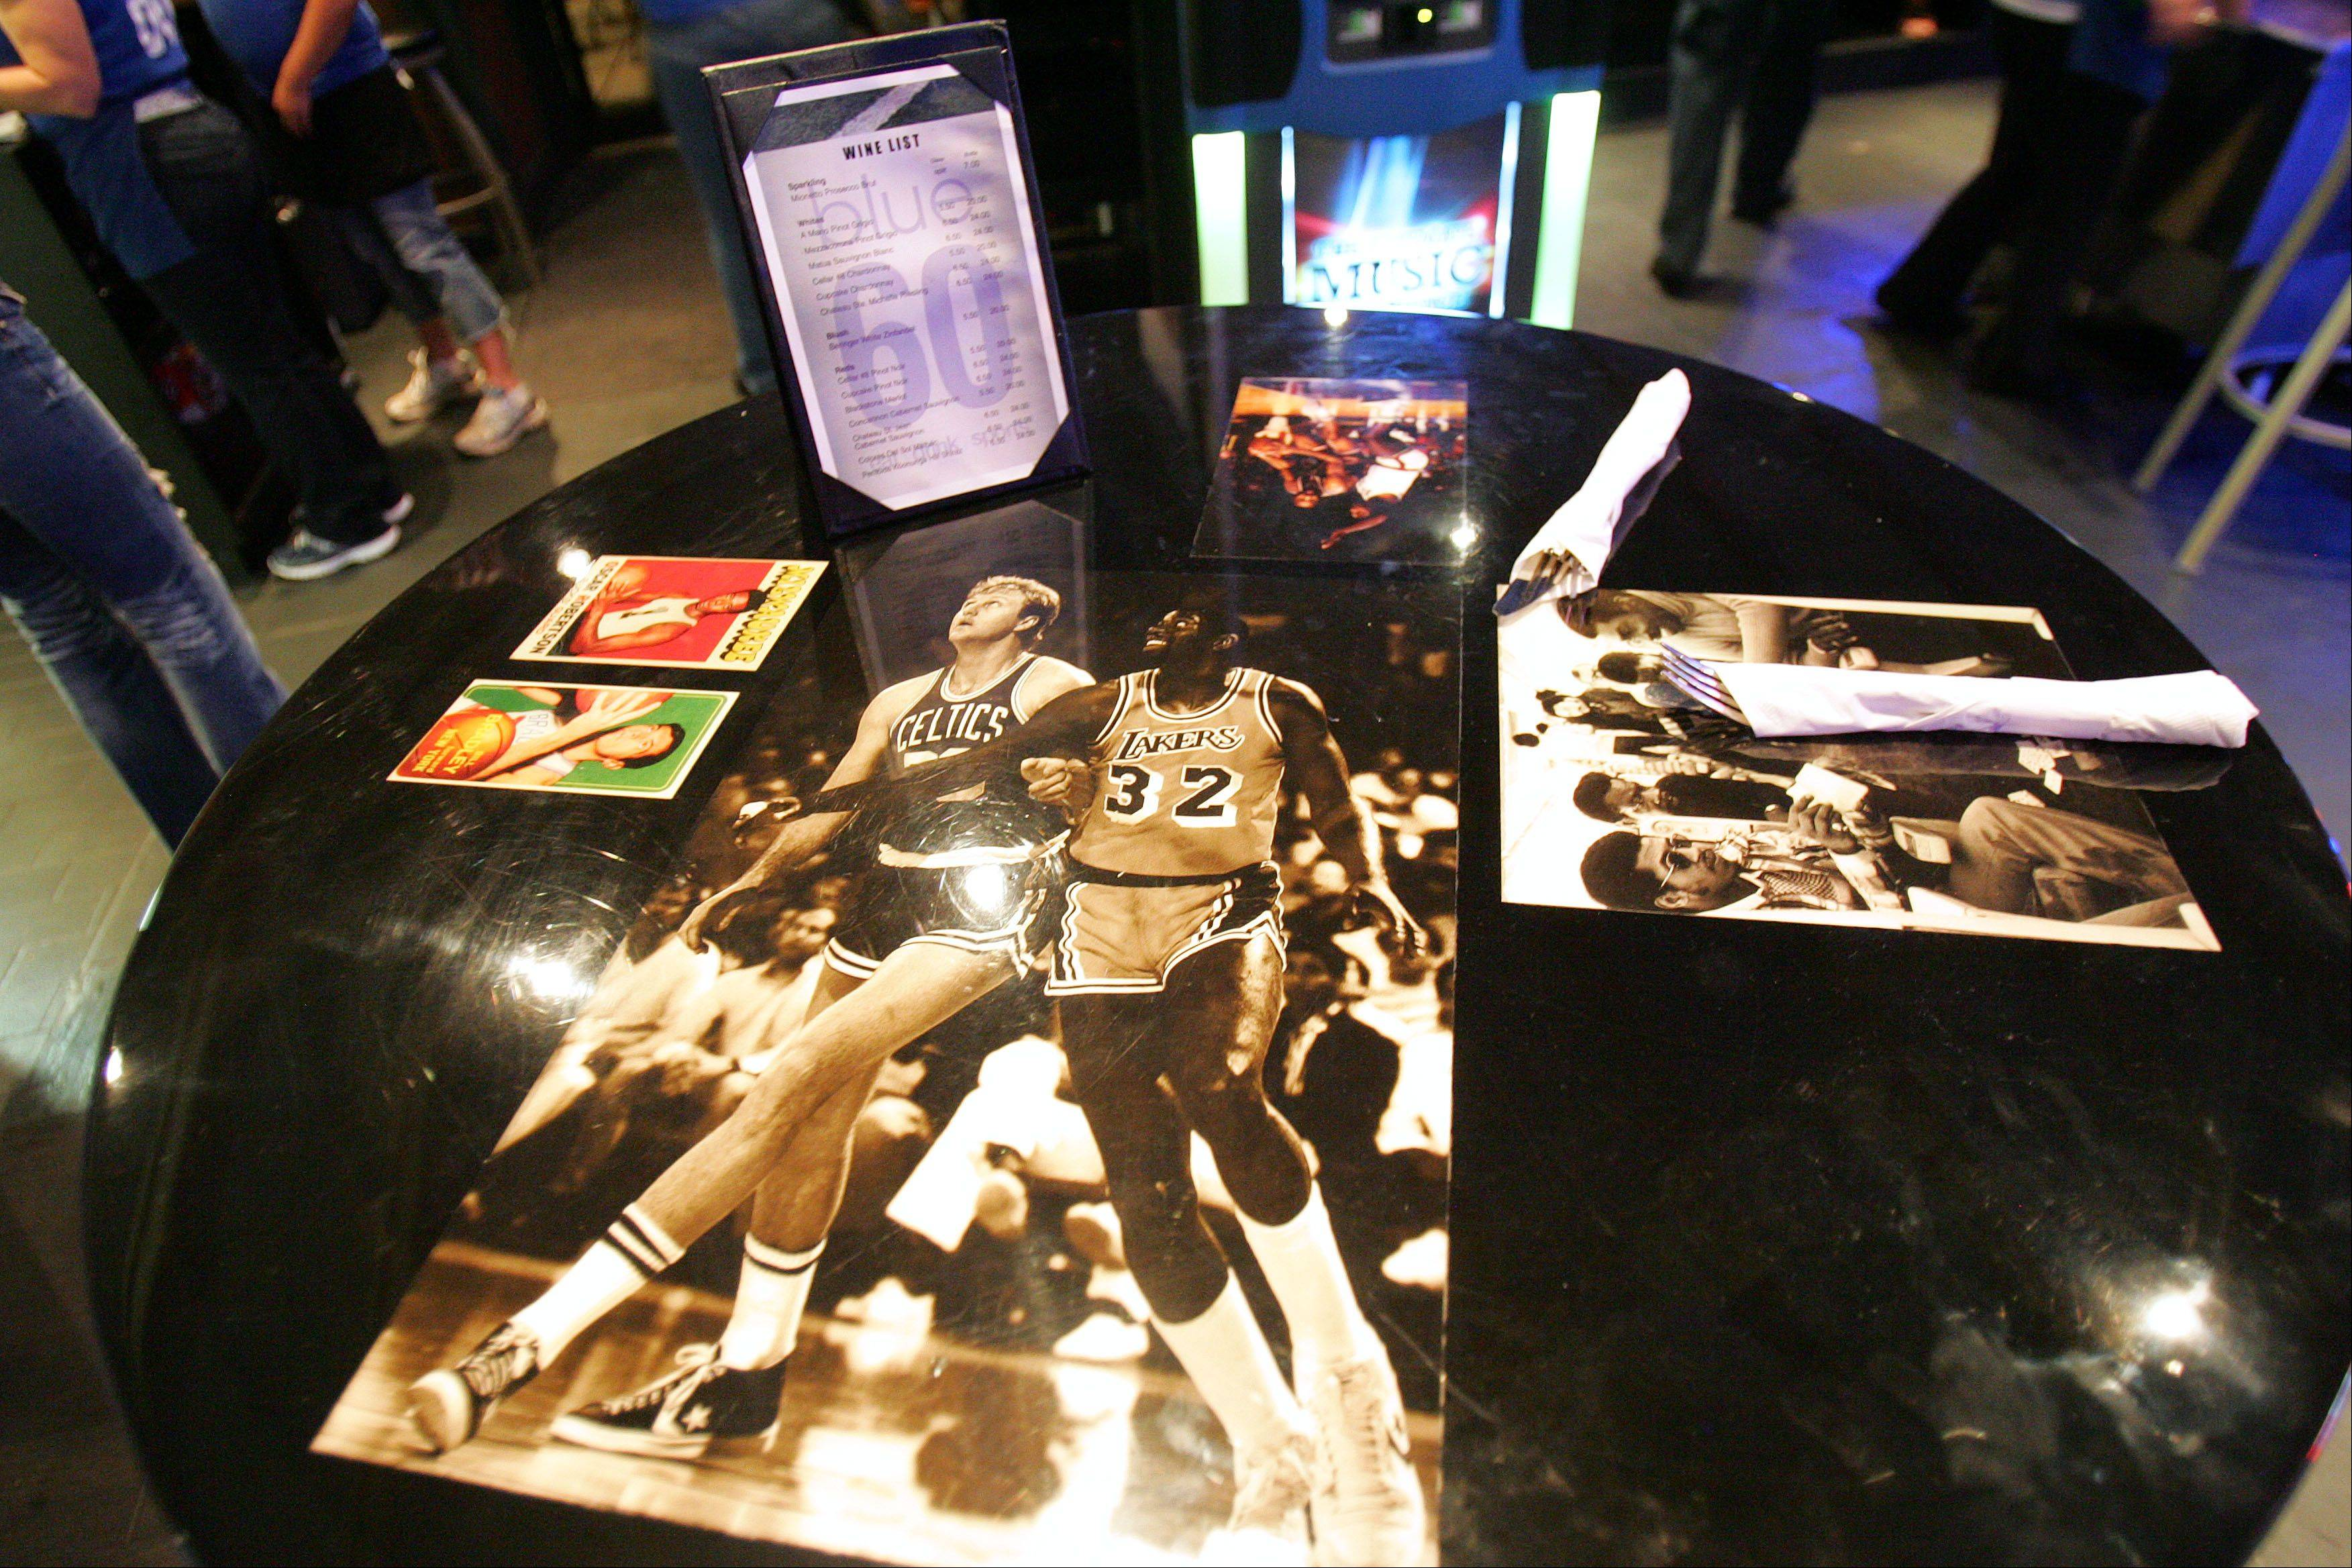 Sports pictures adorn the tables at Blue 60.